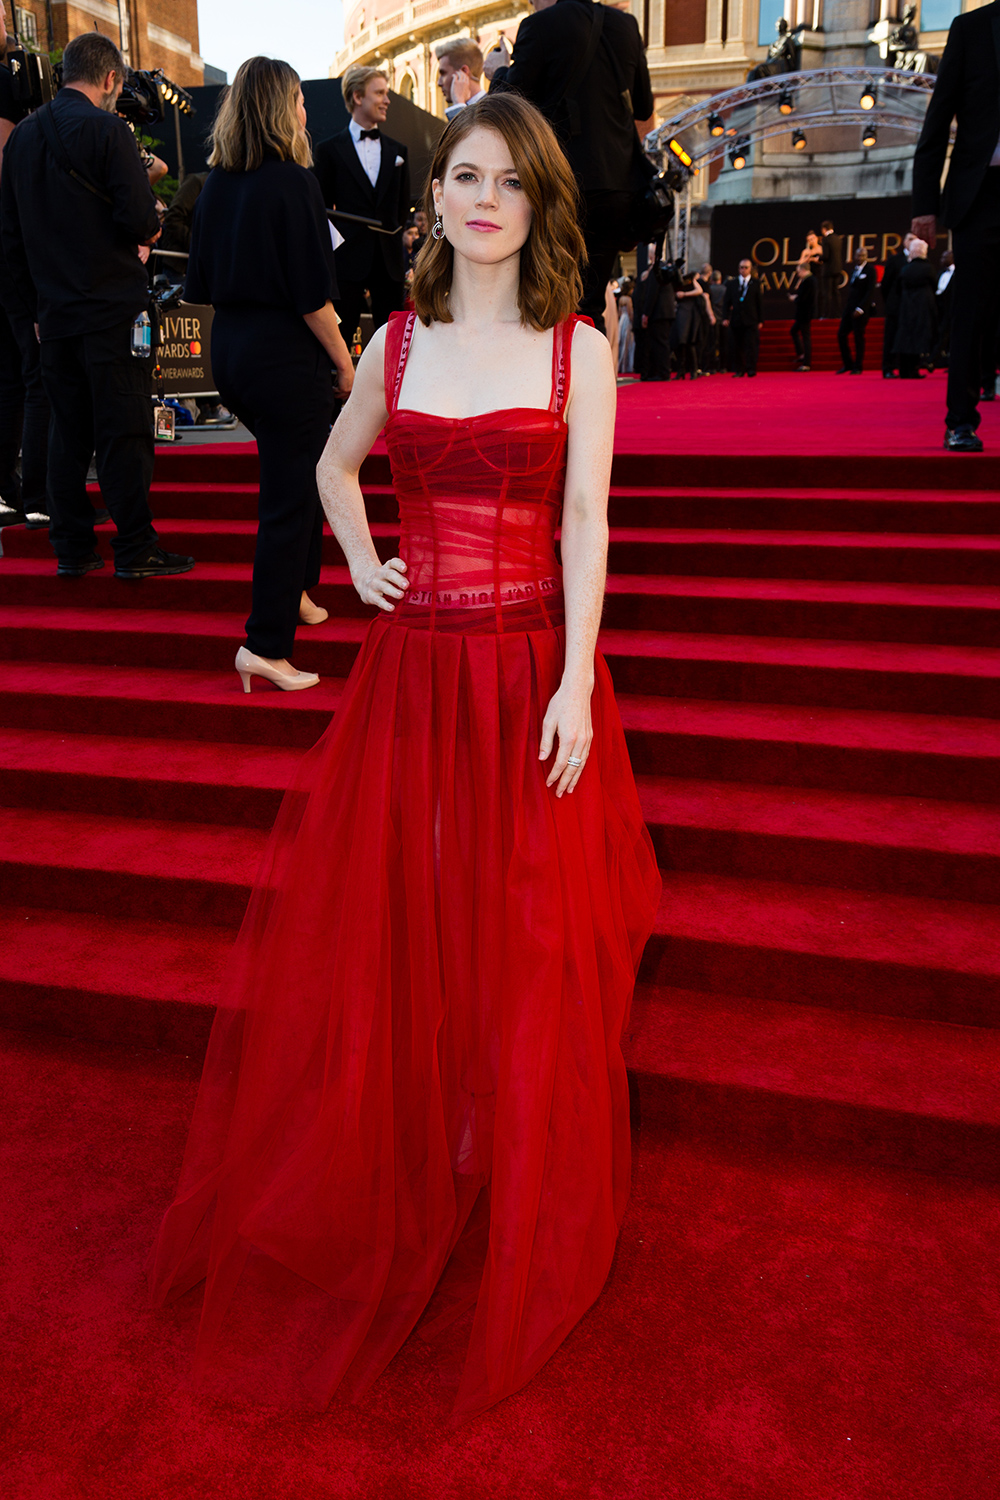 Rose Leslie Won The Olivier Awards With Her Dior Gown